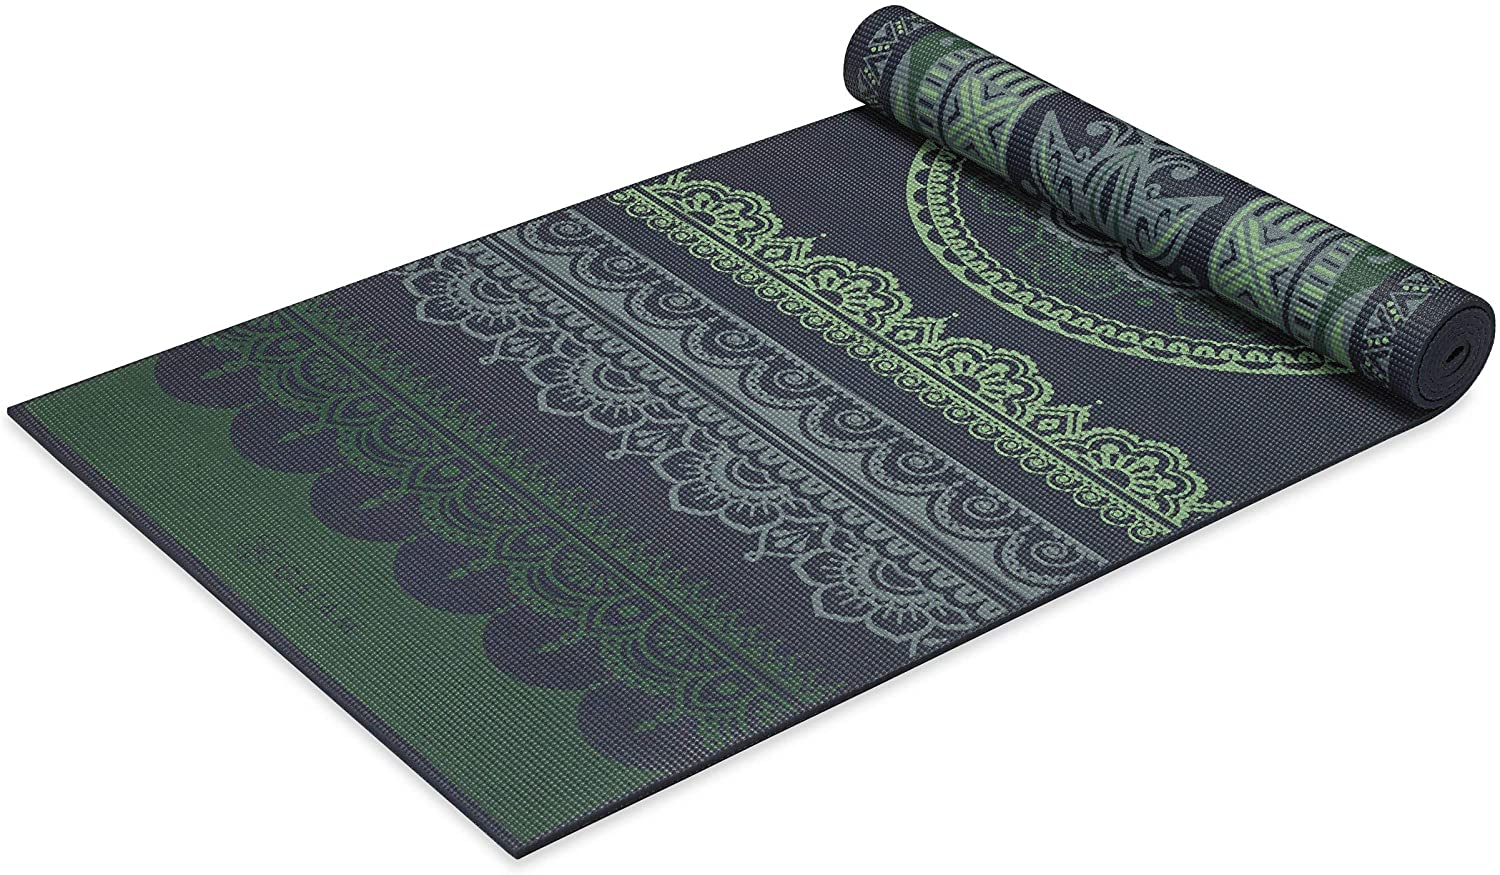 Gaiam Yoga Mat - Premium 6mm Print Reversible Extra Thick Non Slip Exercise & Fitness Mat for All Types of Yoga, Pilates & Floor Workouts (68